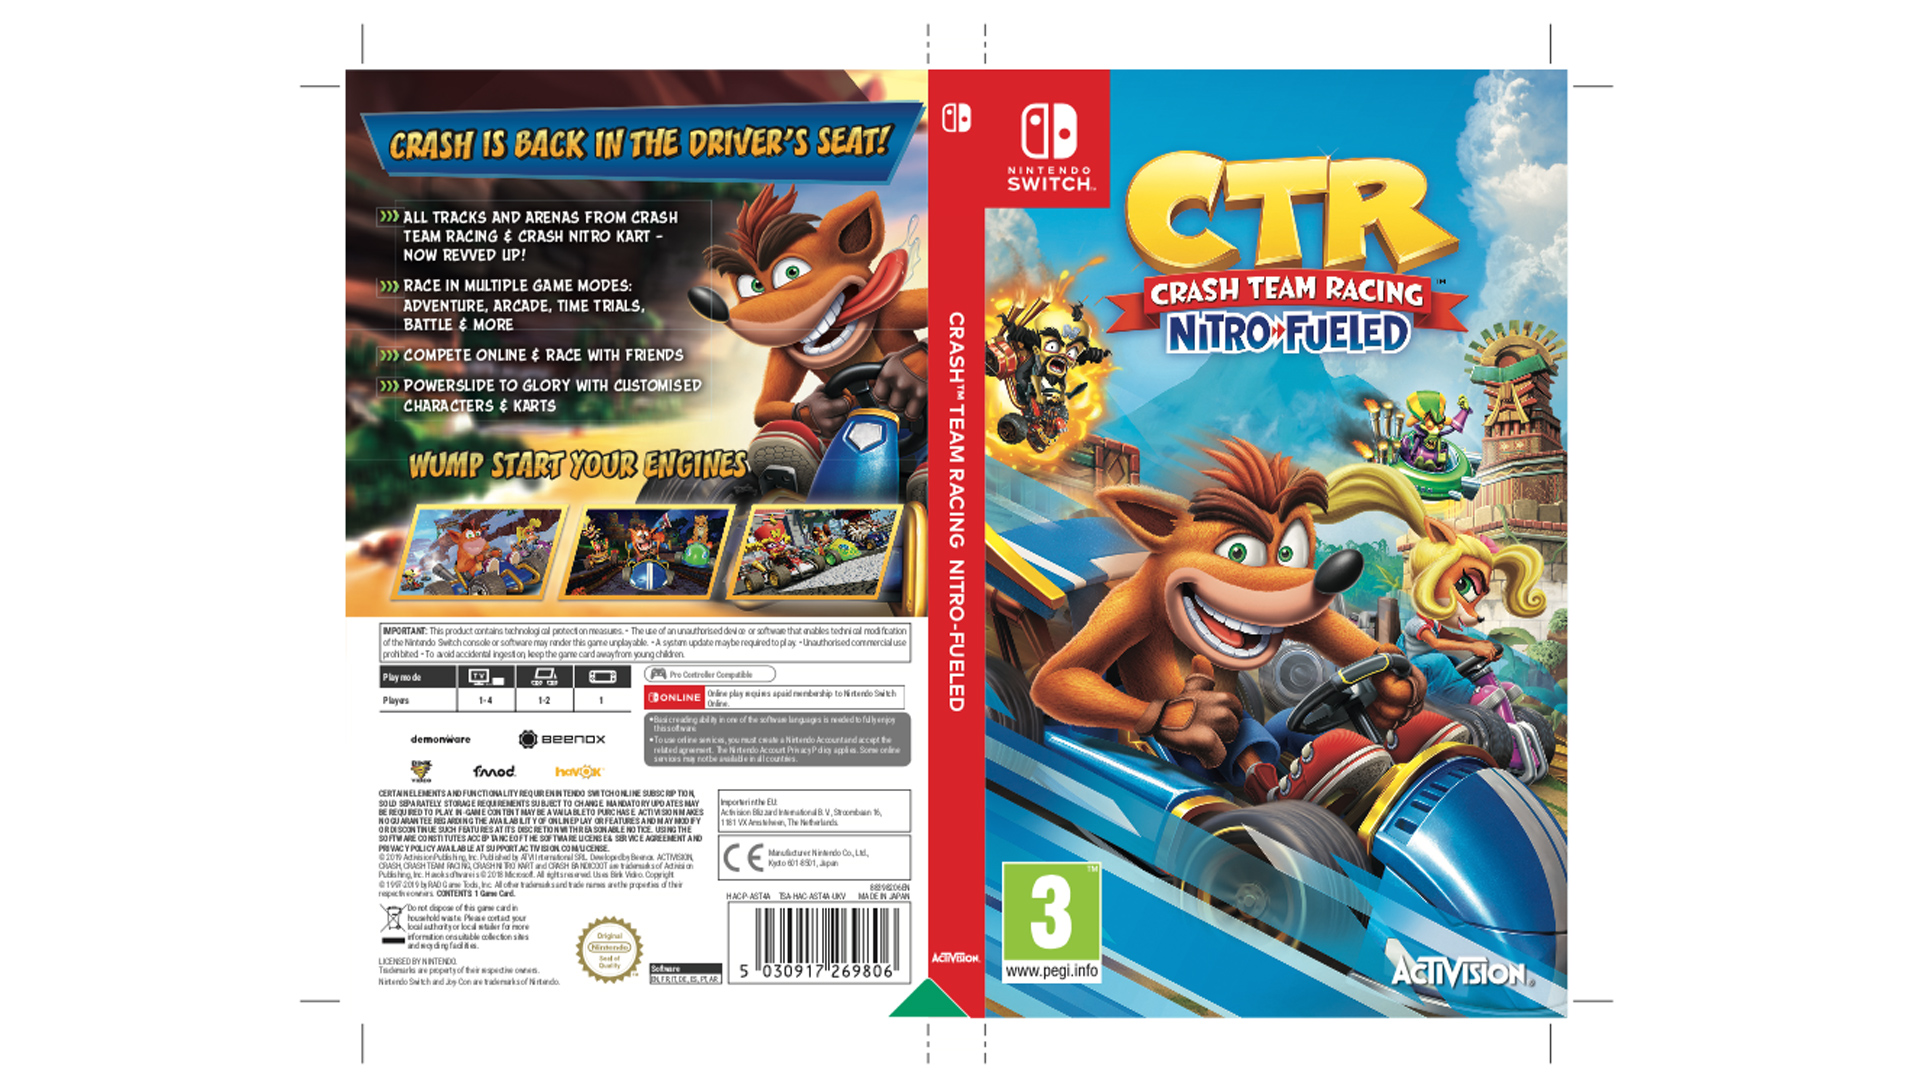 Crash_inlay_Reprographic_Nintendo_switch